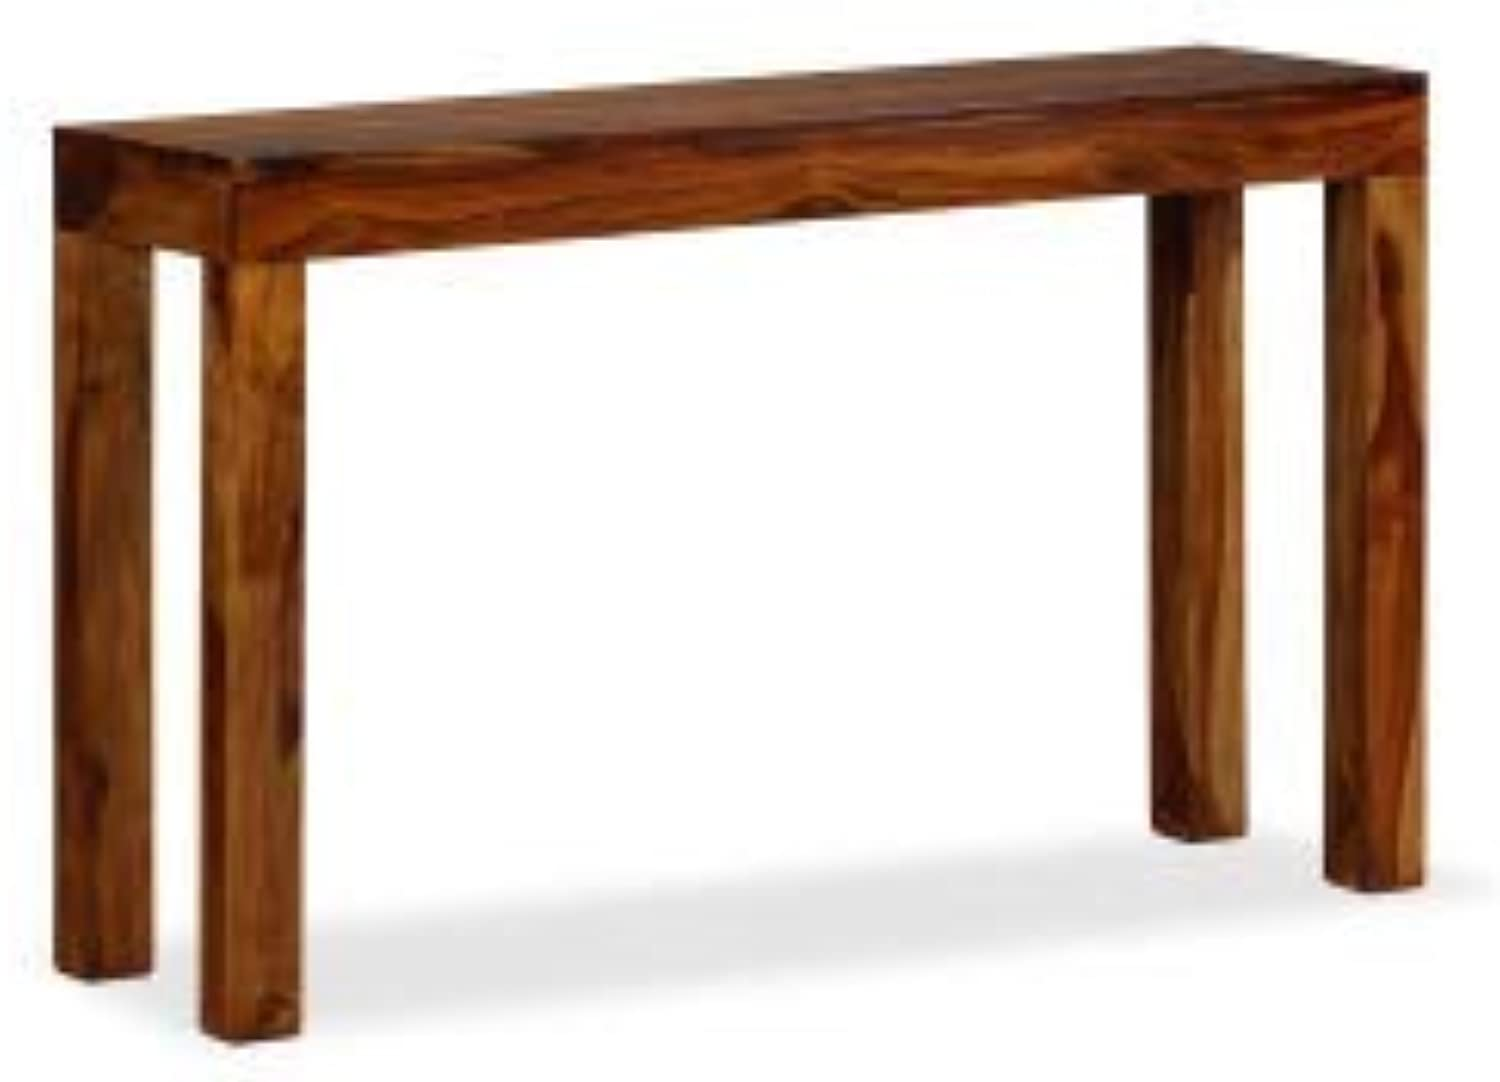 VidaXL Solid Sheesham Wood Console Table 120x35x75cm Hallway Telephone Stand